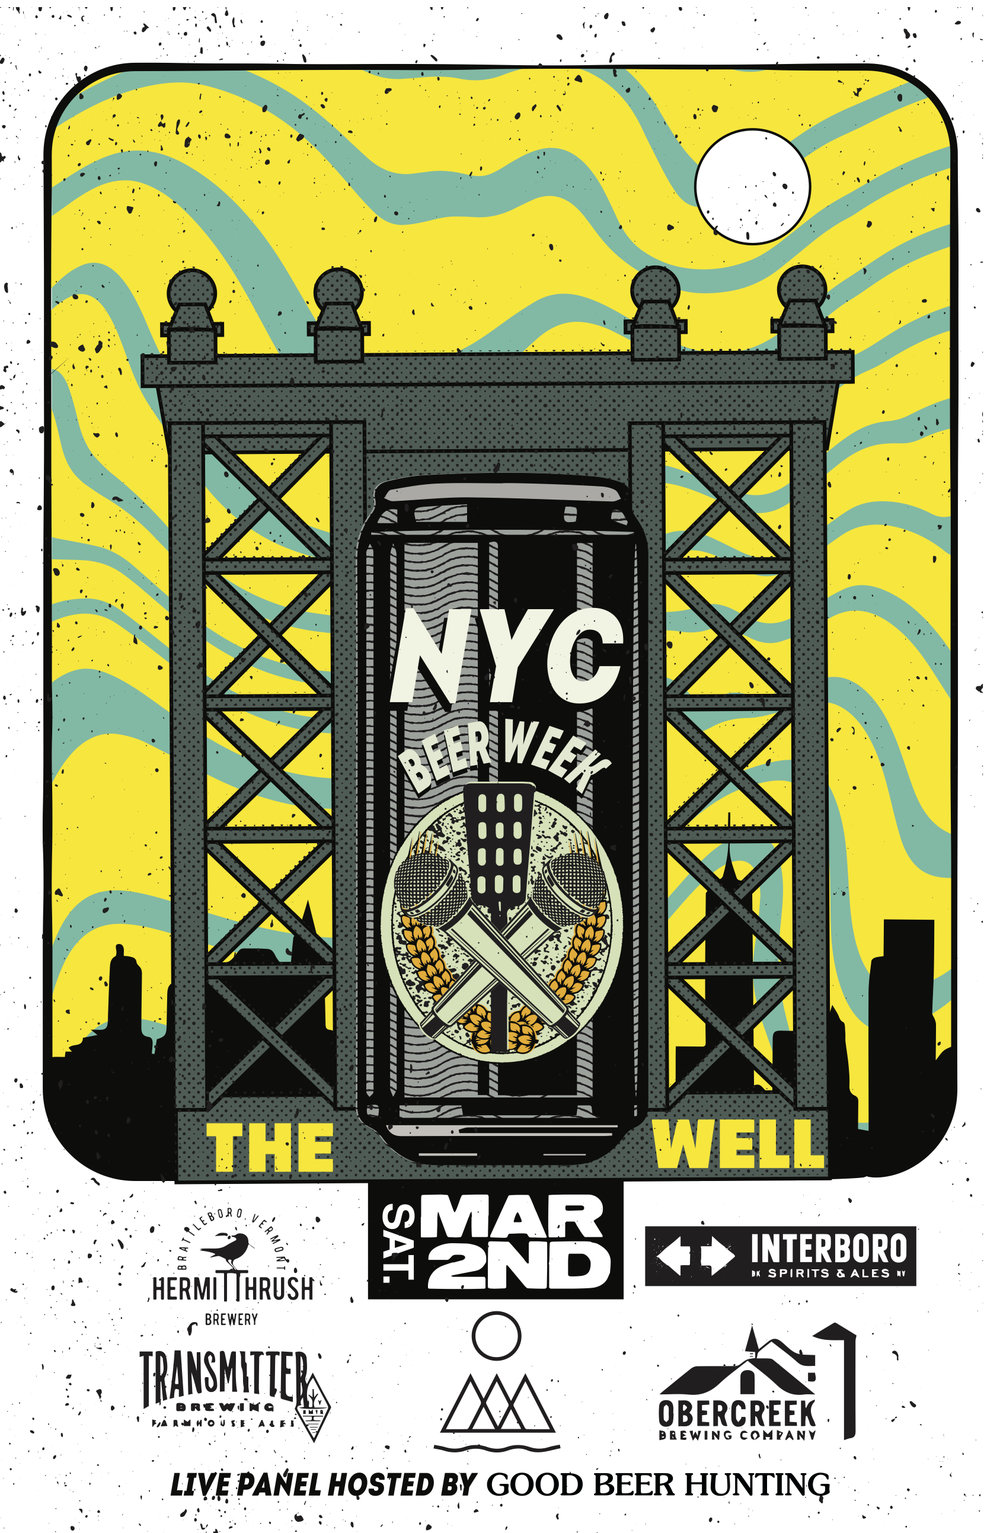 NYCBeerWeek_TheWell_Mar2_Poster.jpg